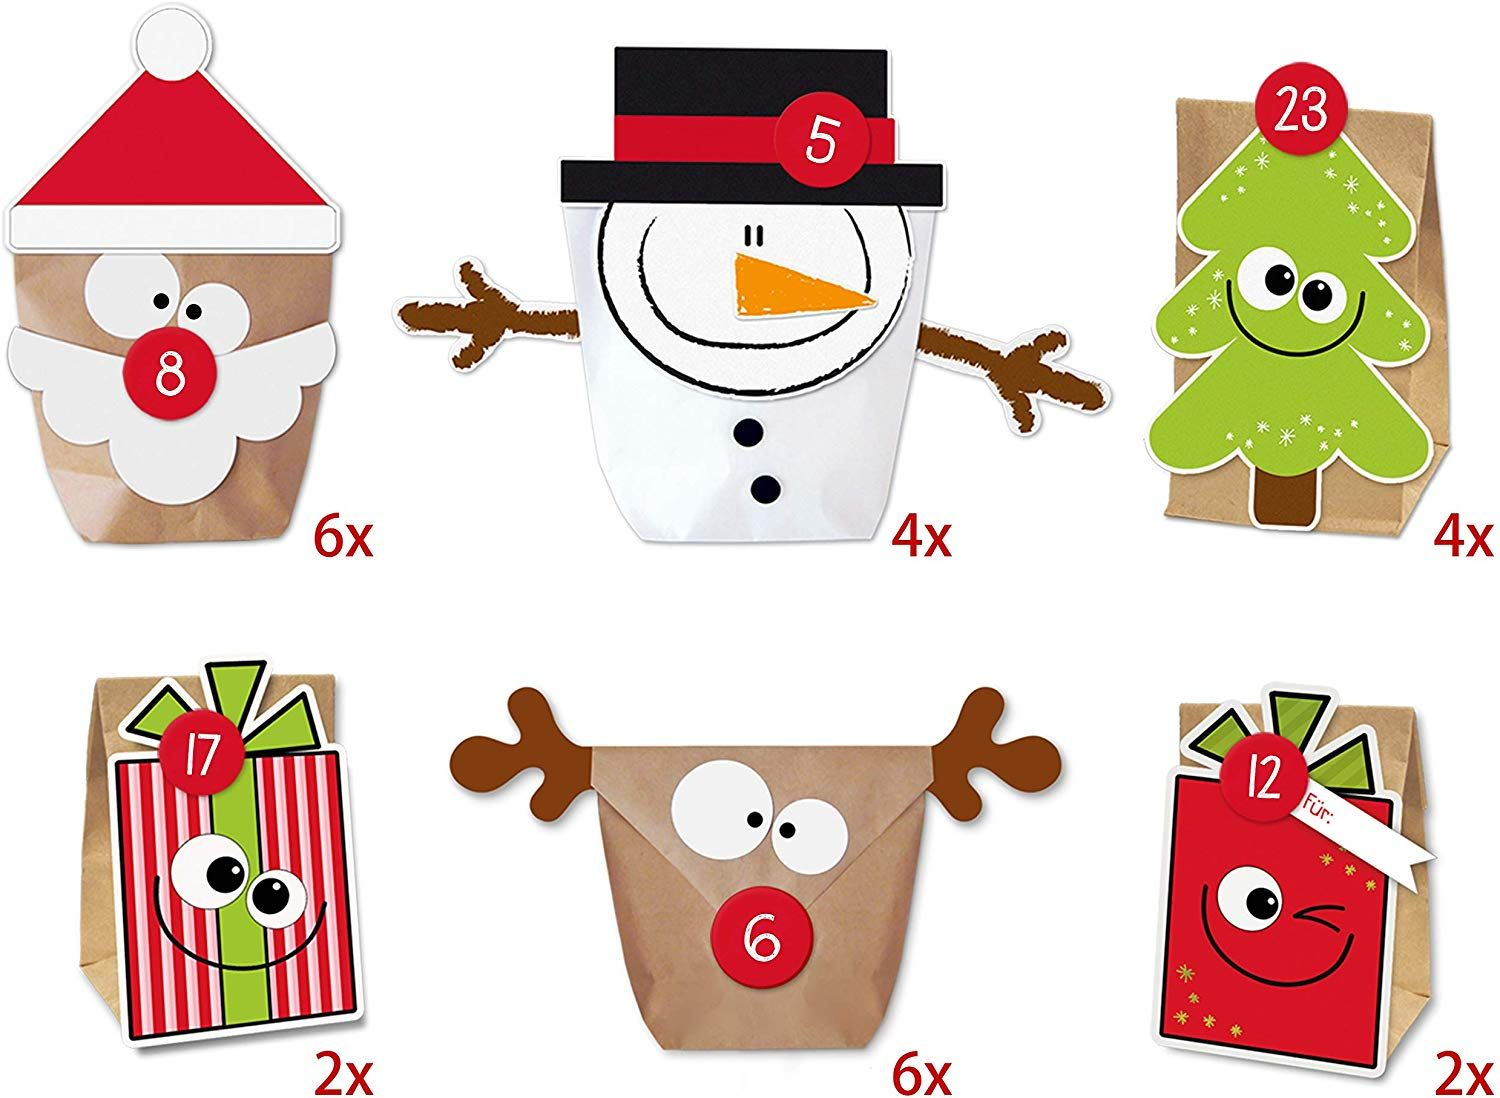 Amazon.de KuschelICH DIY Adventskalender Set Mix zum